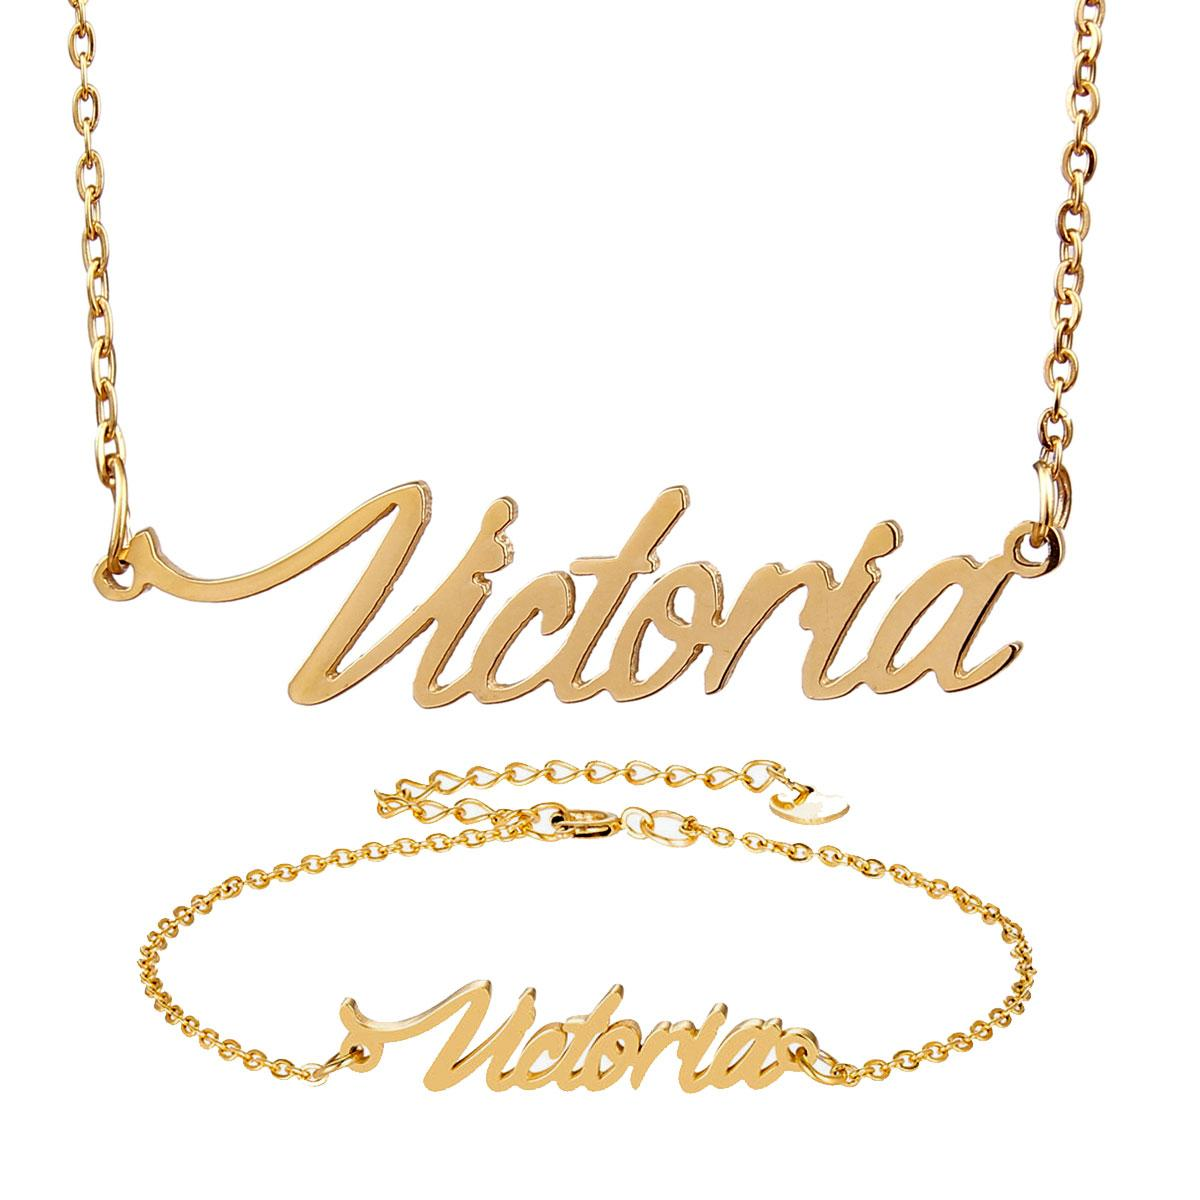 """Fashion Jewelry Stainless Steel Name Necklace Bracelet Set """" Victoria """" Script Letter Gold Choker Chain Necklace Pendant Nameplate Gift"""